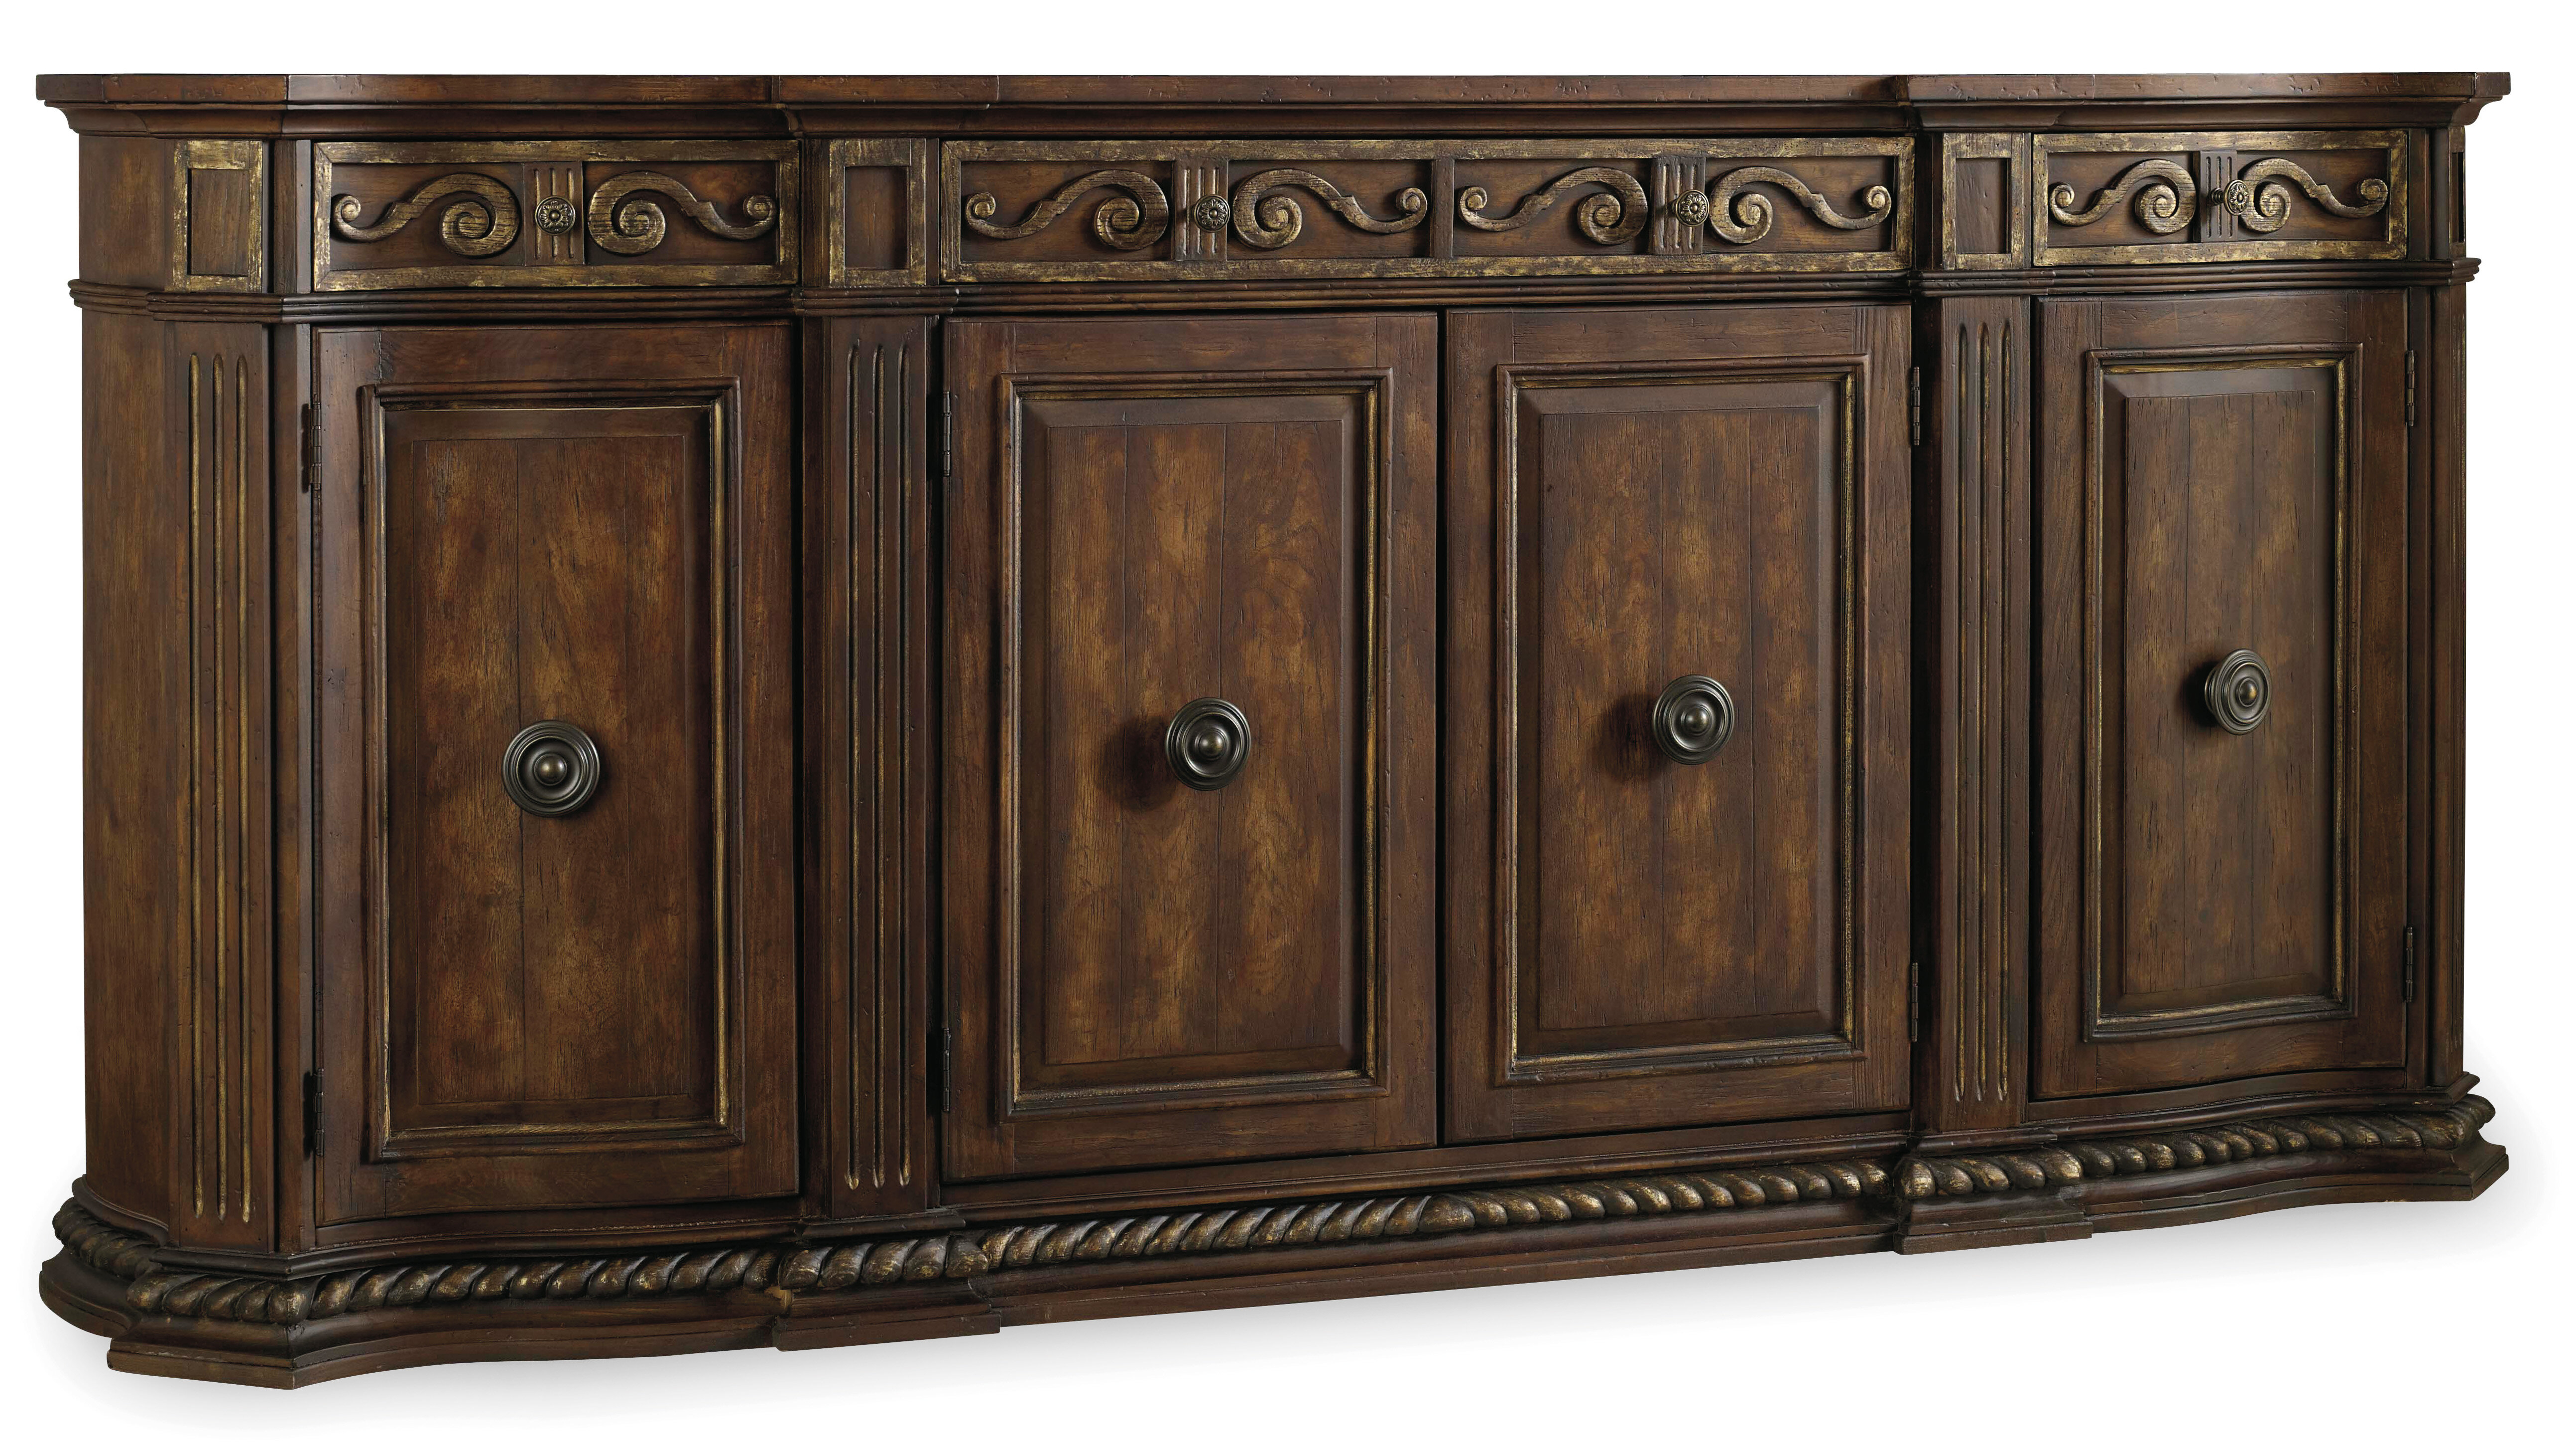 Hooker Furniture Apollinaris Sideboard in Jacklyn 3 Door Sideboards (Image 13 of 30)